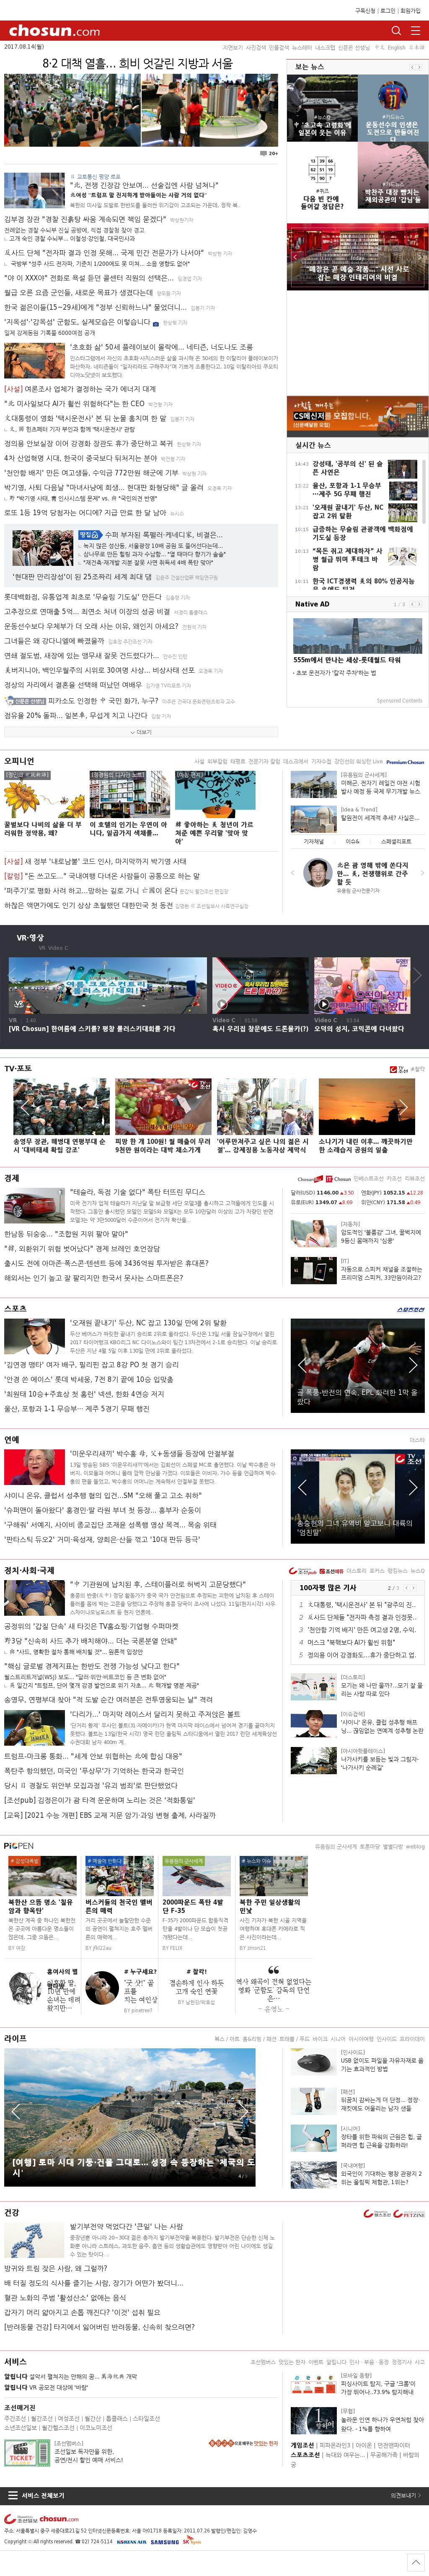 chosun.com at Sunday Aug. 13, 2017, 5:01 p.m. UTC